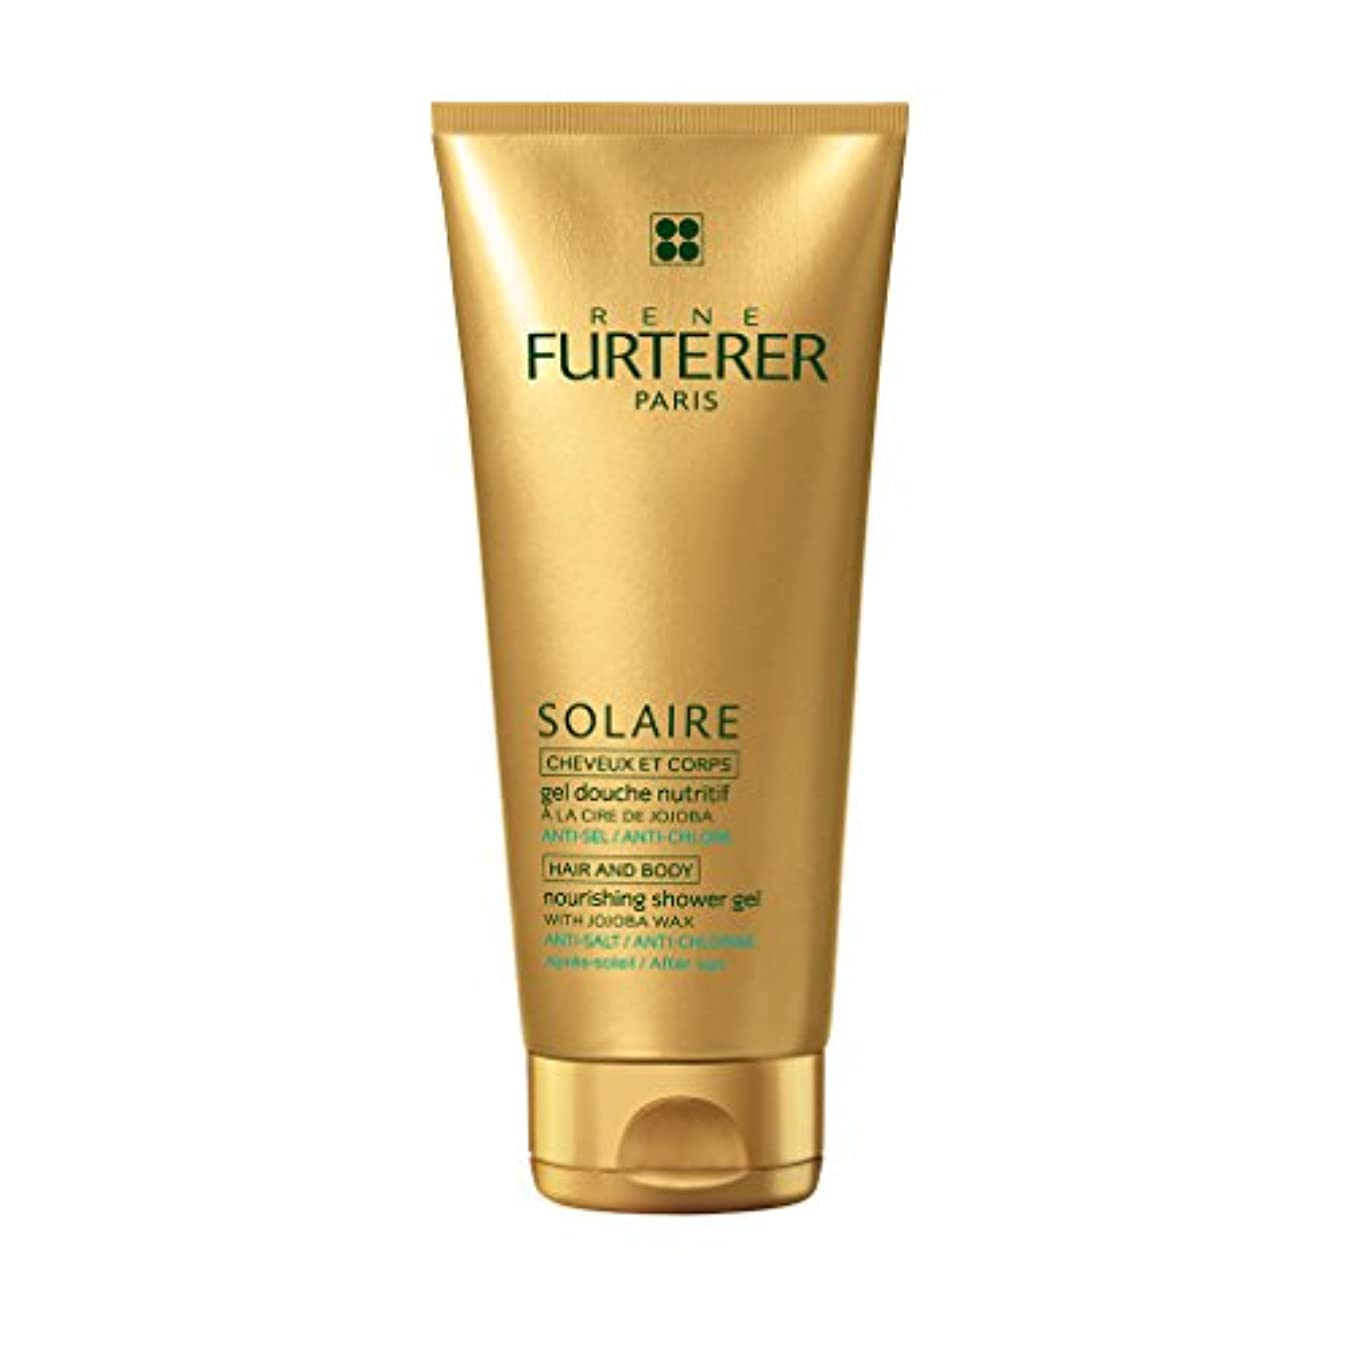 事驚き菊ルネ フルトレール Solaire Nourishing Shower Gel with Jojoba Wax (Hair and Body) 200ml